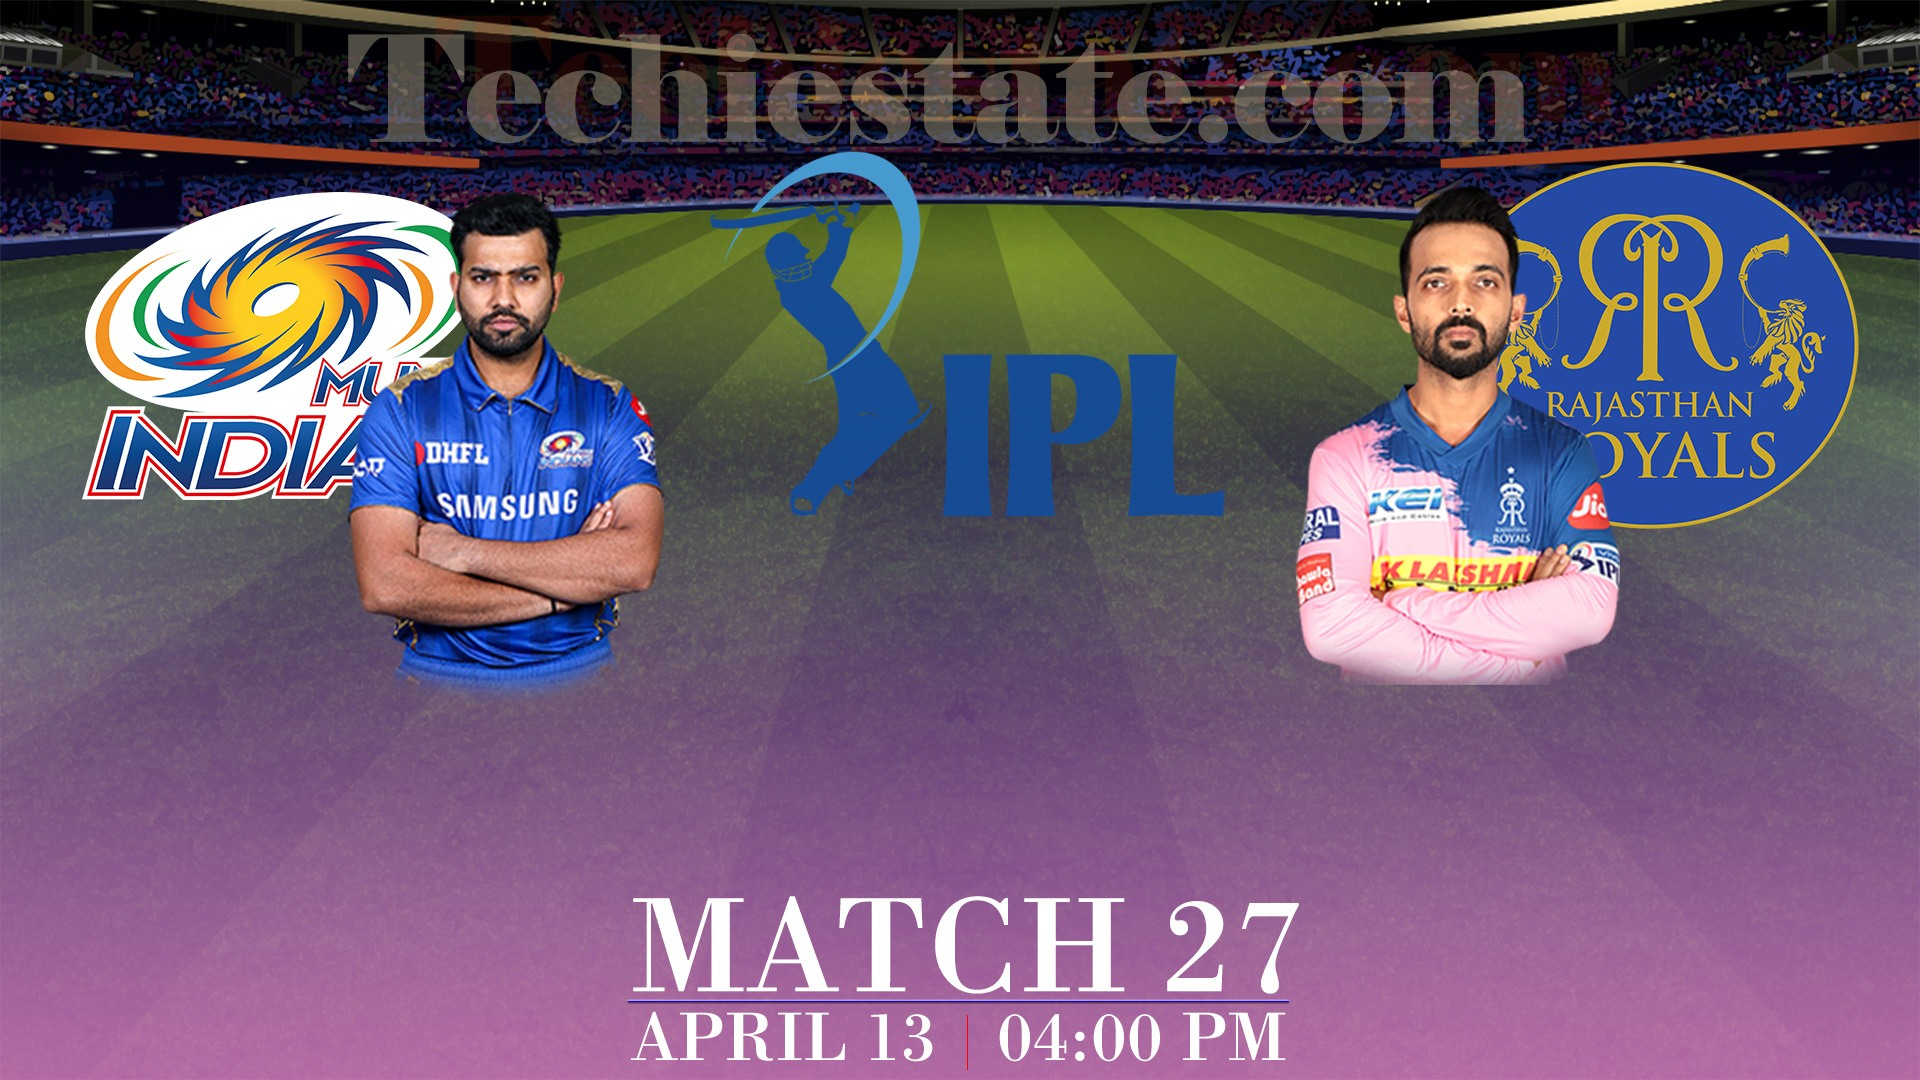 Mumbai Indians Vs Rajasthan Royals Match Prediction, Live Cricket Scores